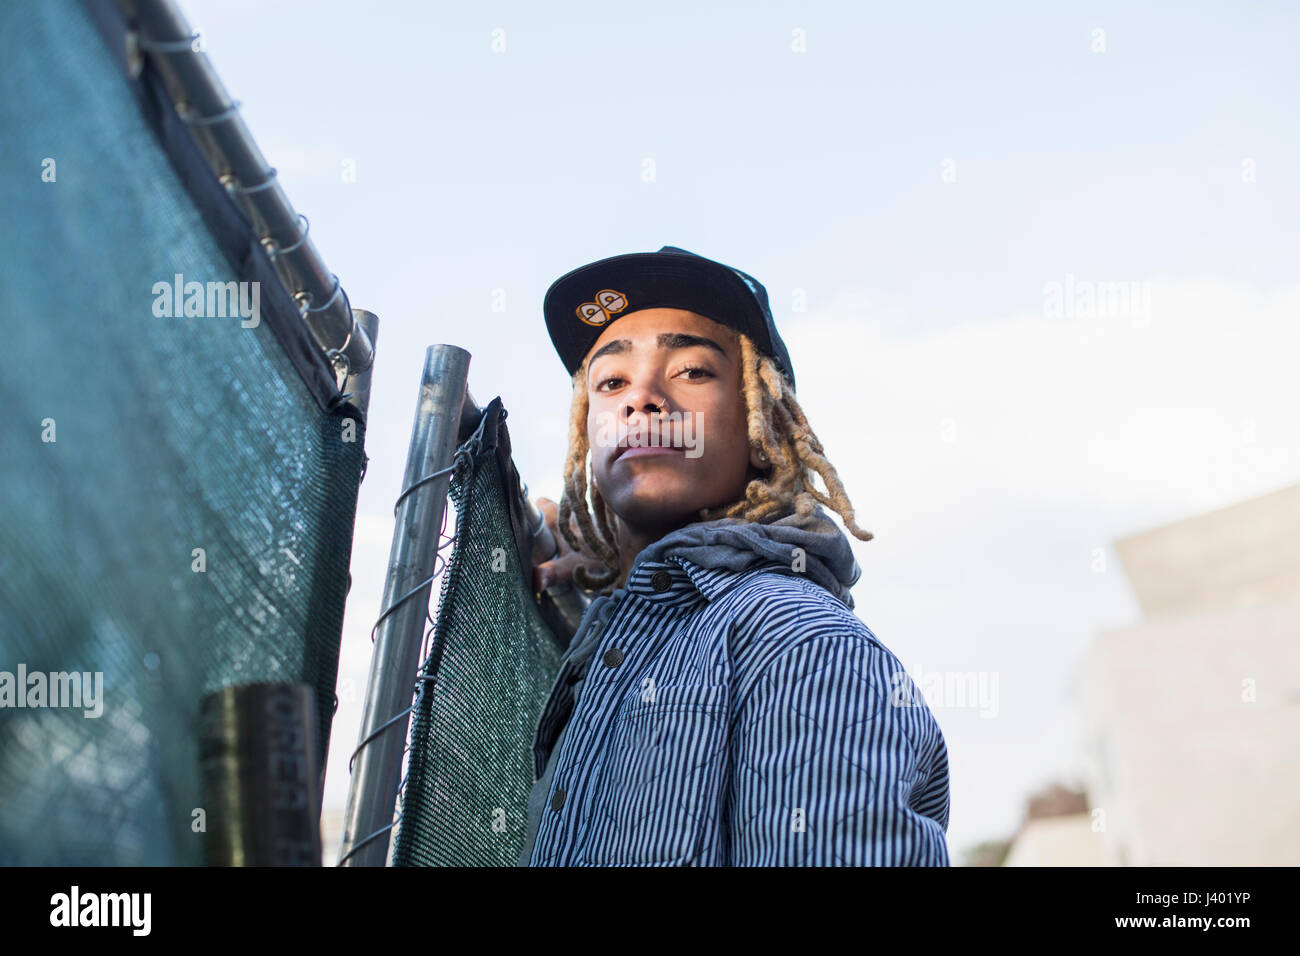 Profile of a young man. - Stock Image